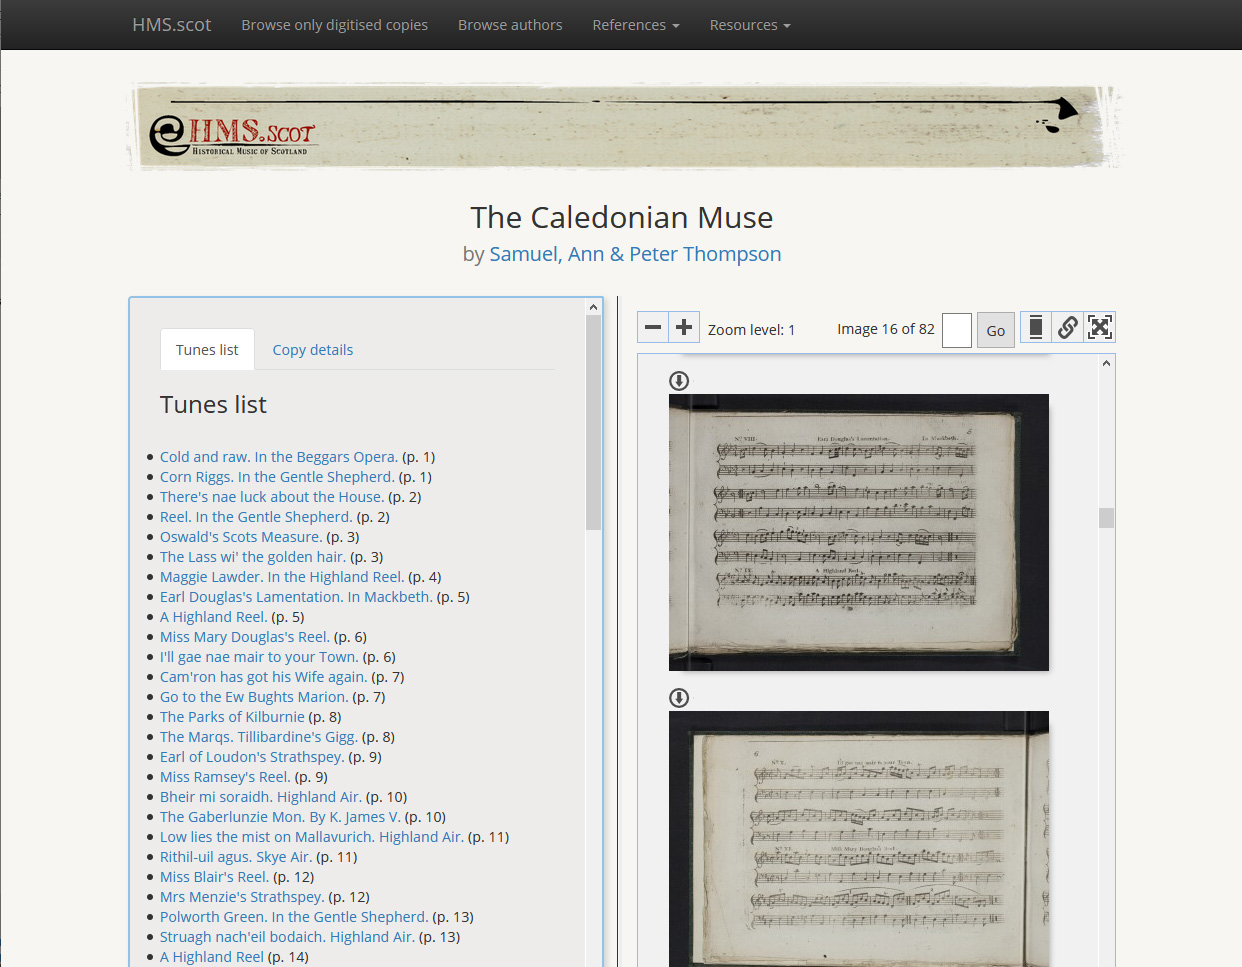 Catalogue entry for 'The Caledonian Muse'